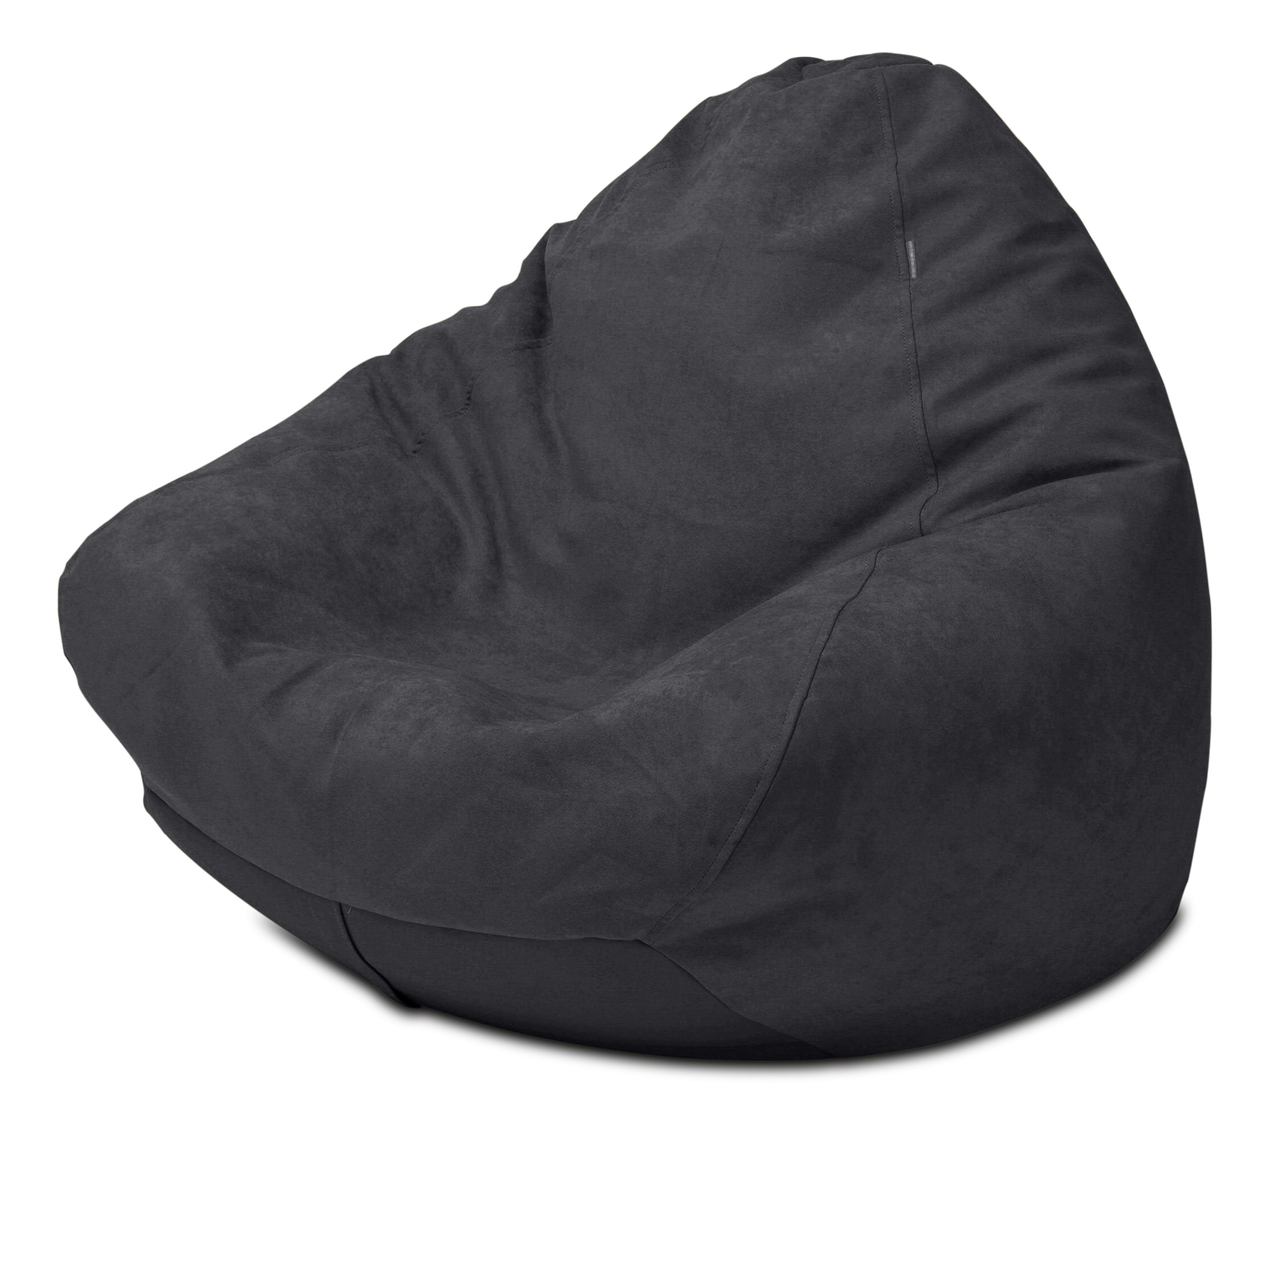 Warwick Macrosuede Queen Size Bean Bag in black